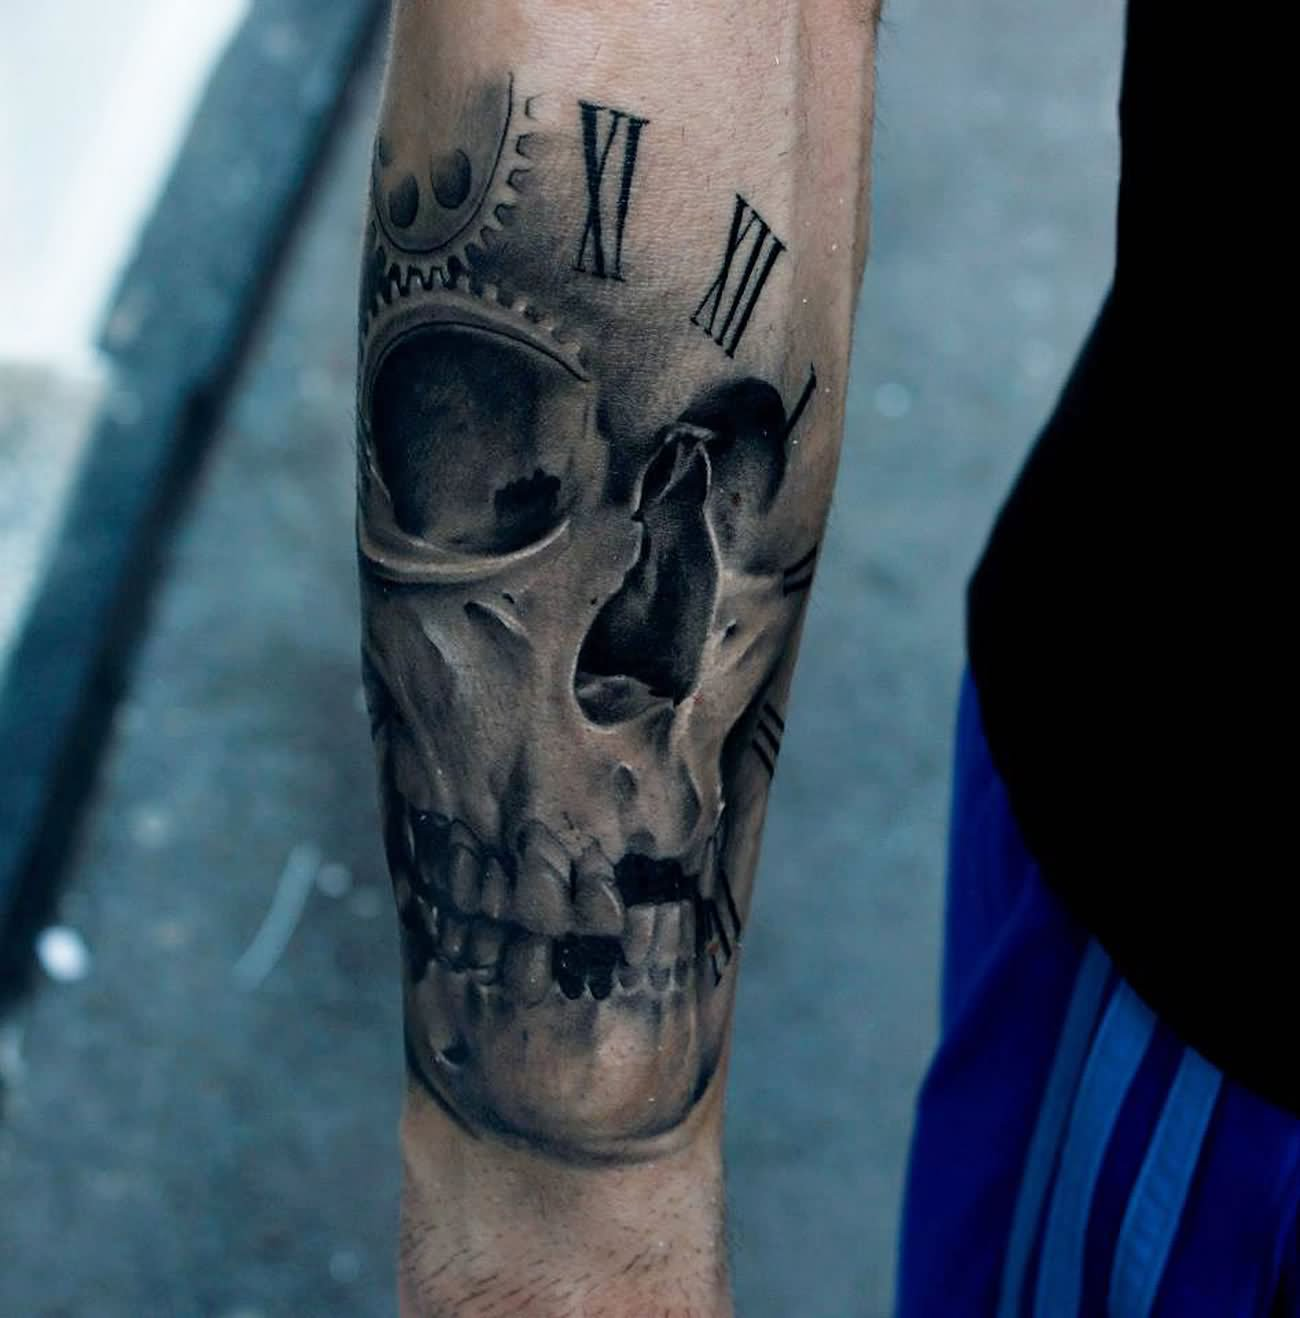 Clock forearm black rose sleeve tattoo - Black And Grey Realistic Skull In Clock Tattoo On Forearm By Bacanu Bogdan